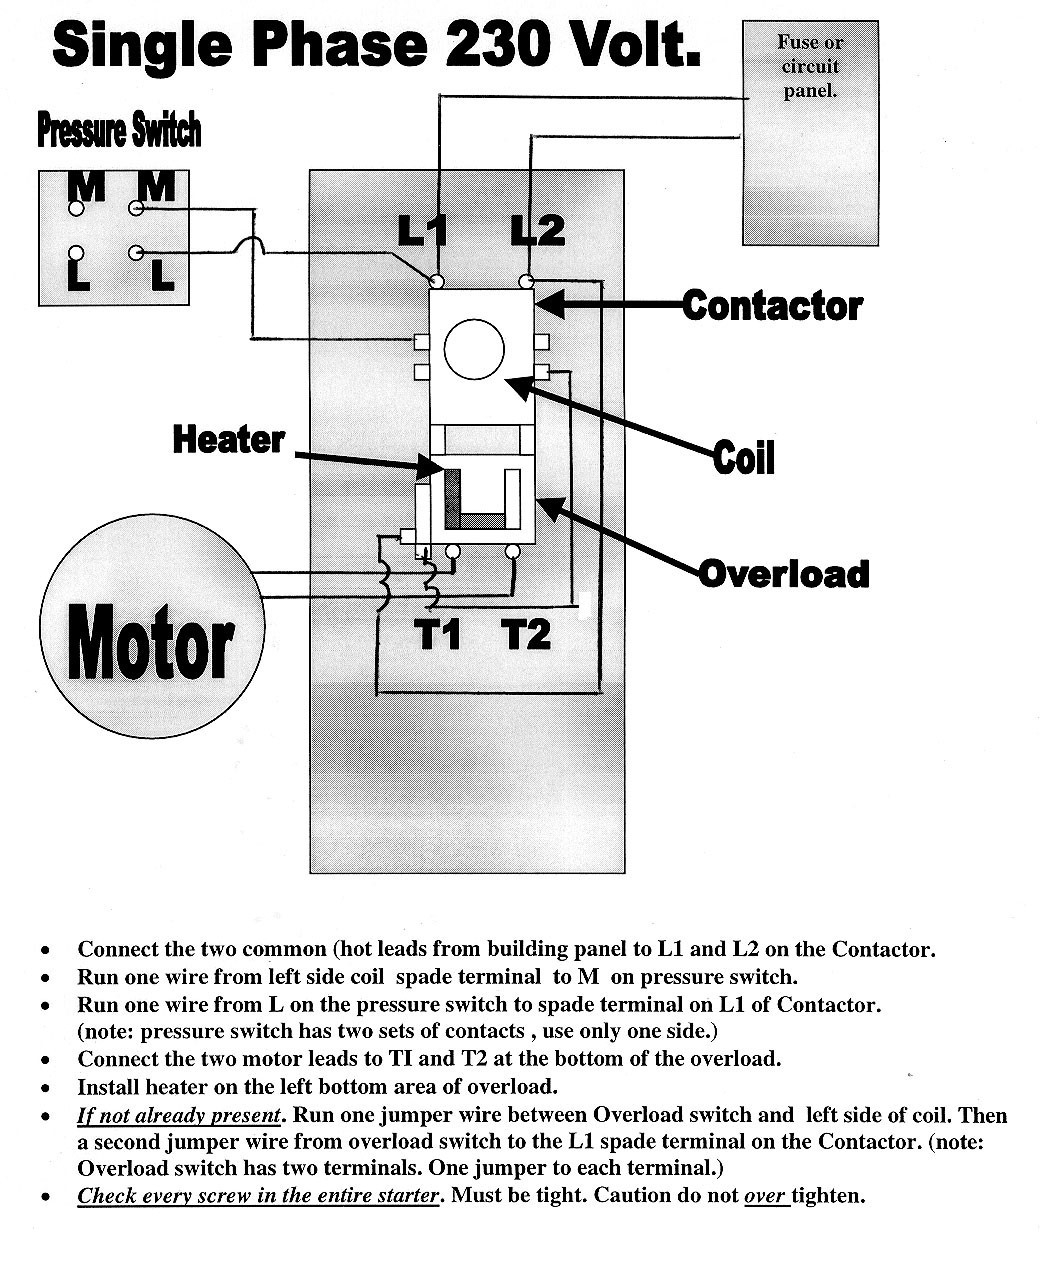 240v Single Phase Wiring Diagram : Single phase induction motor speed control circuit diagram